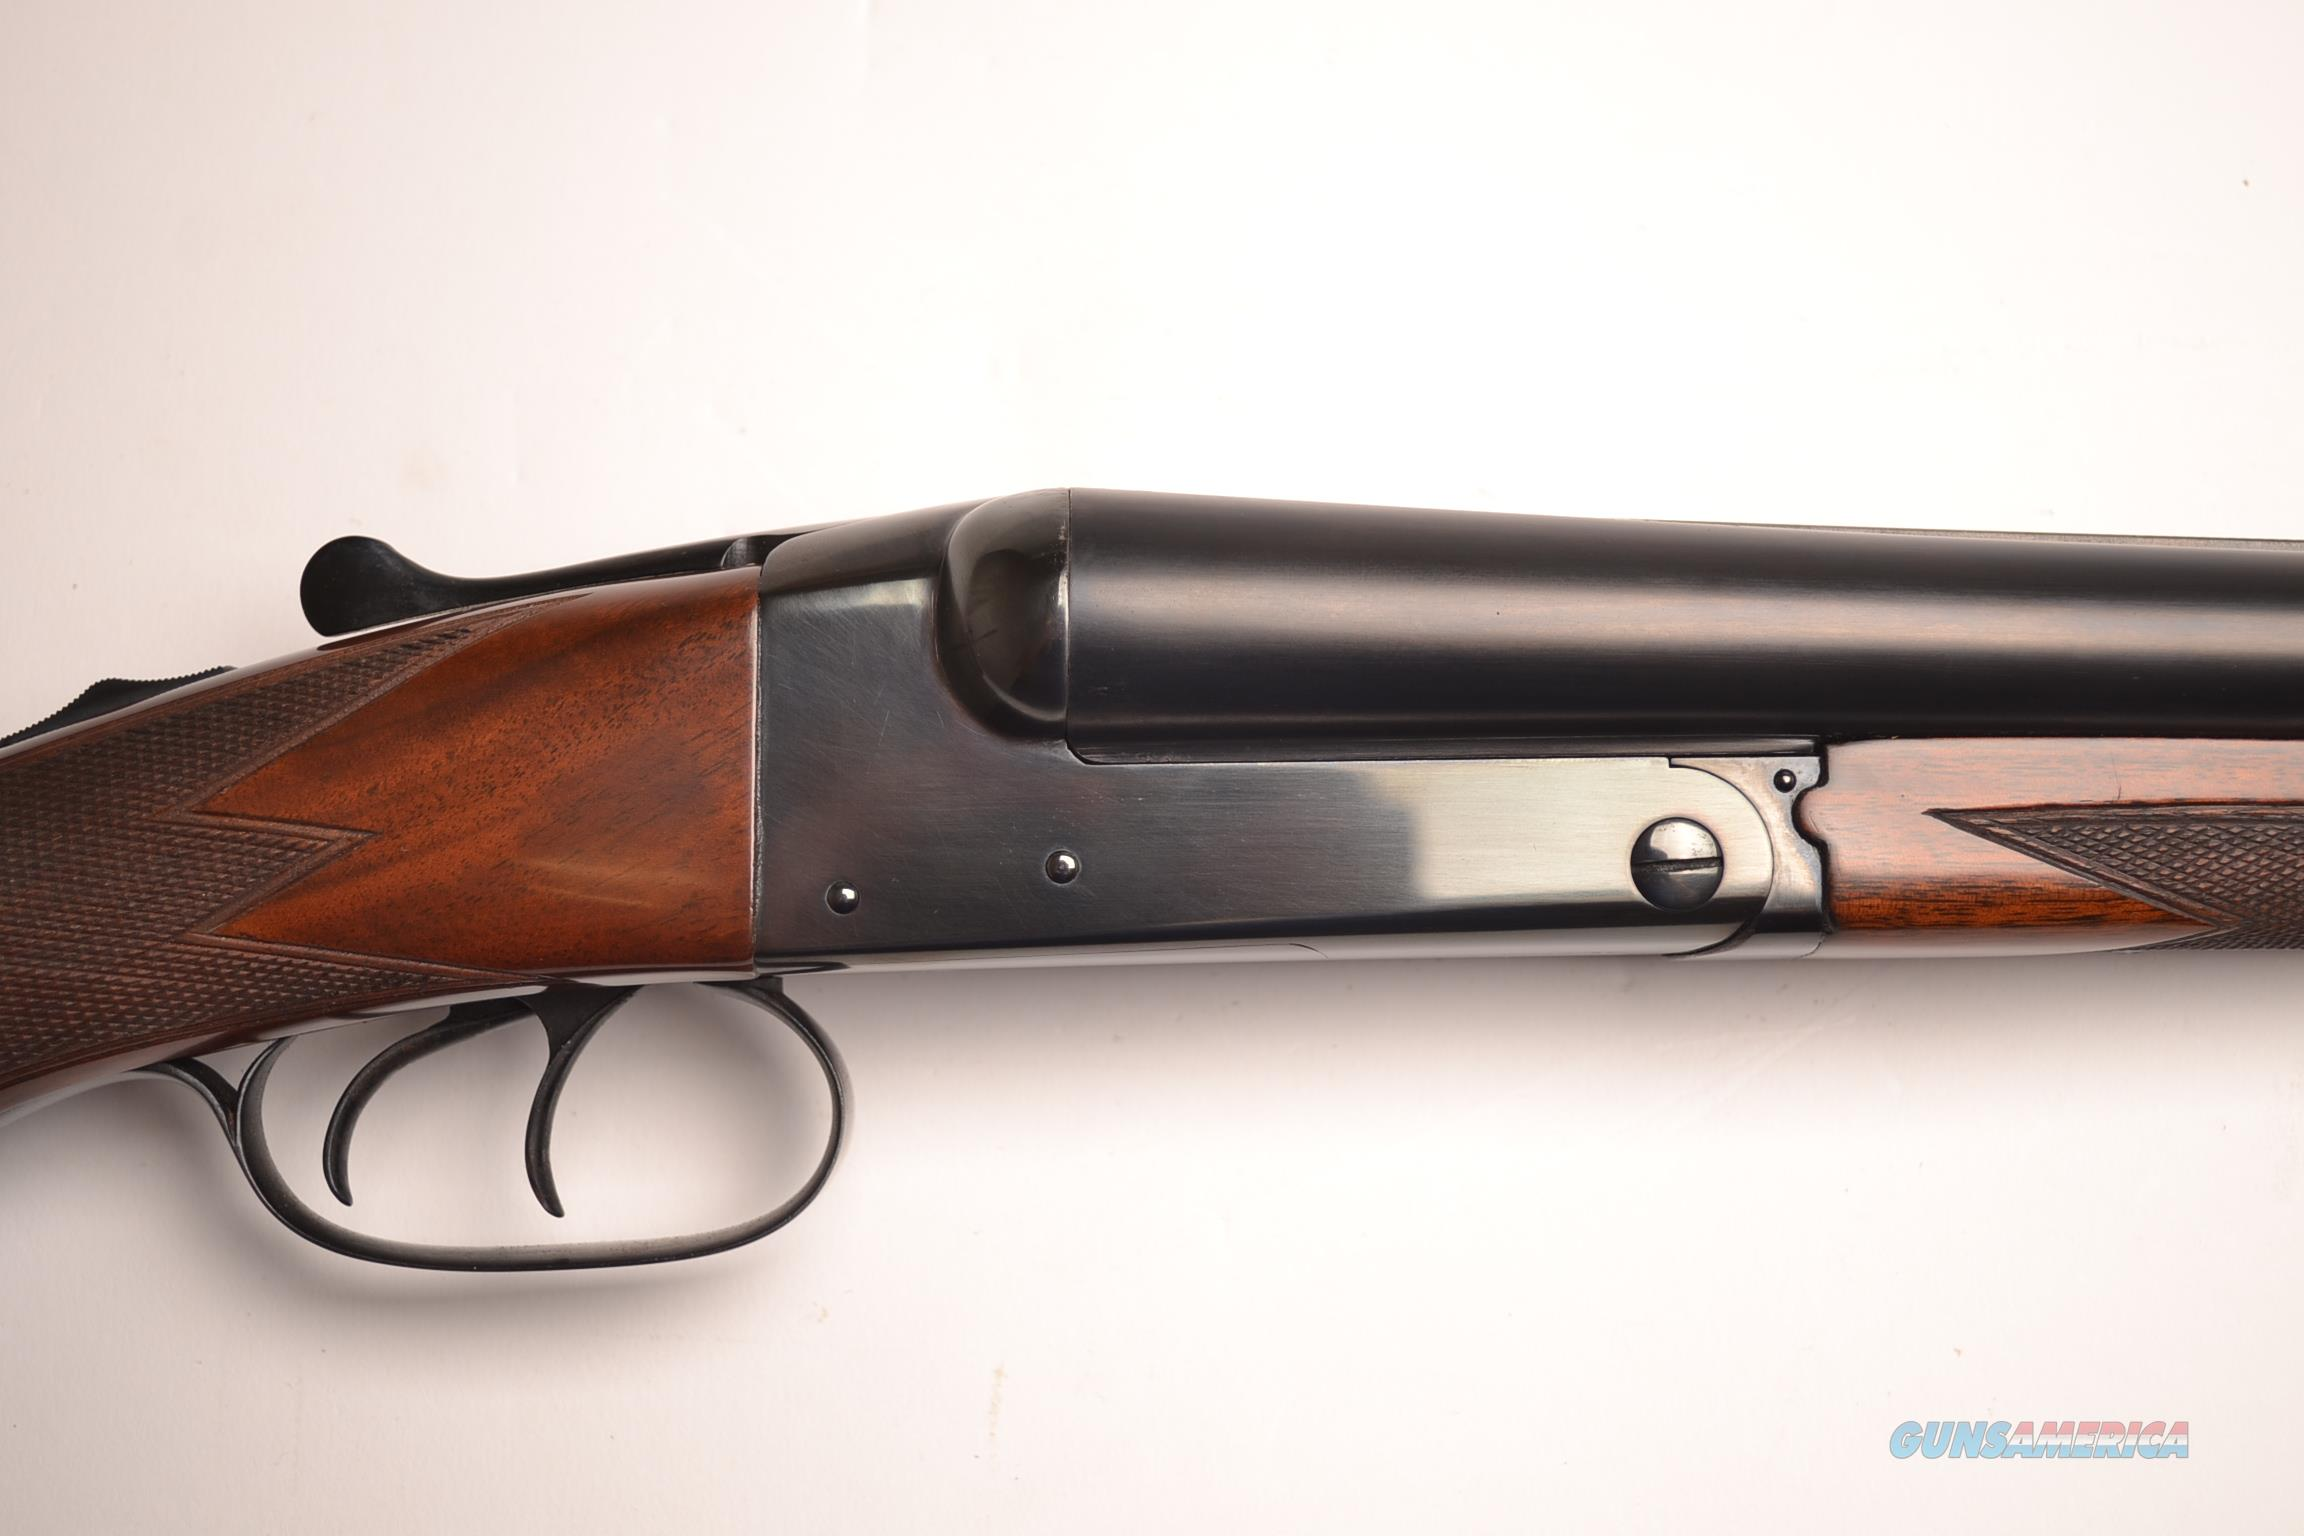 Winchester - Model 21, Round frame custom, Special Order Gun 12ga.  Guns > Shotguns > Winchester Shotguns - Modern > SxS